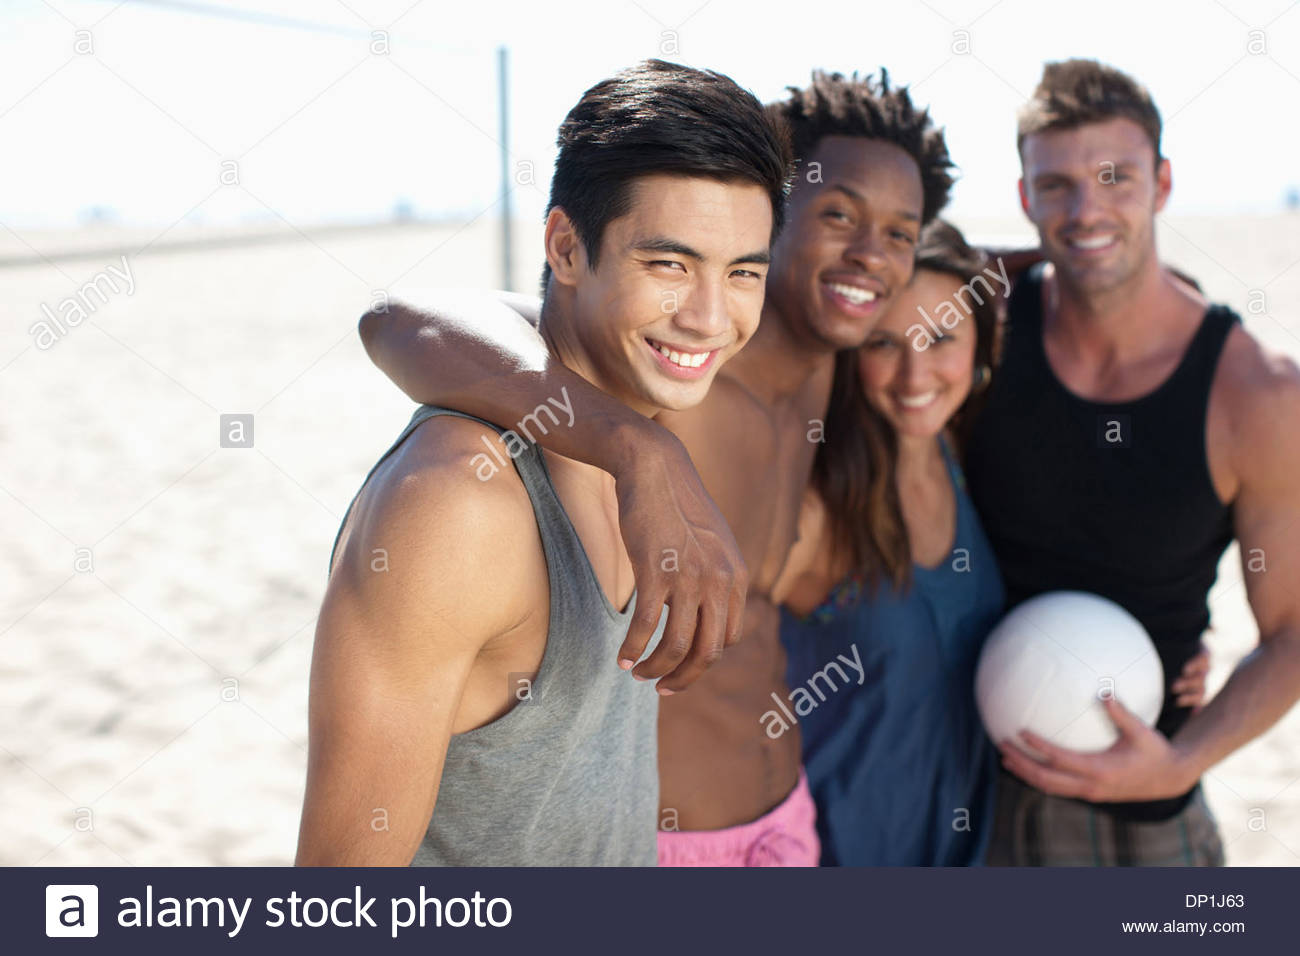 Four people standing on beach volleyball court - Stock Image